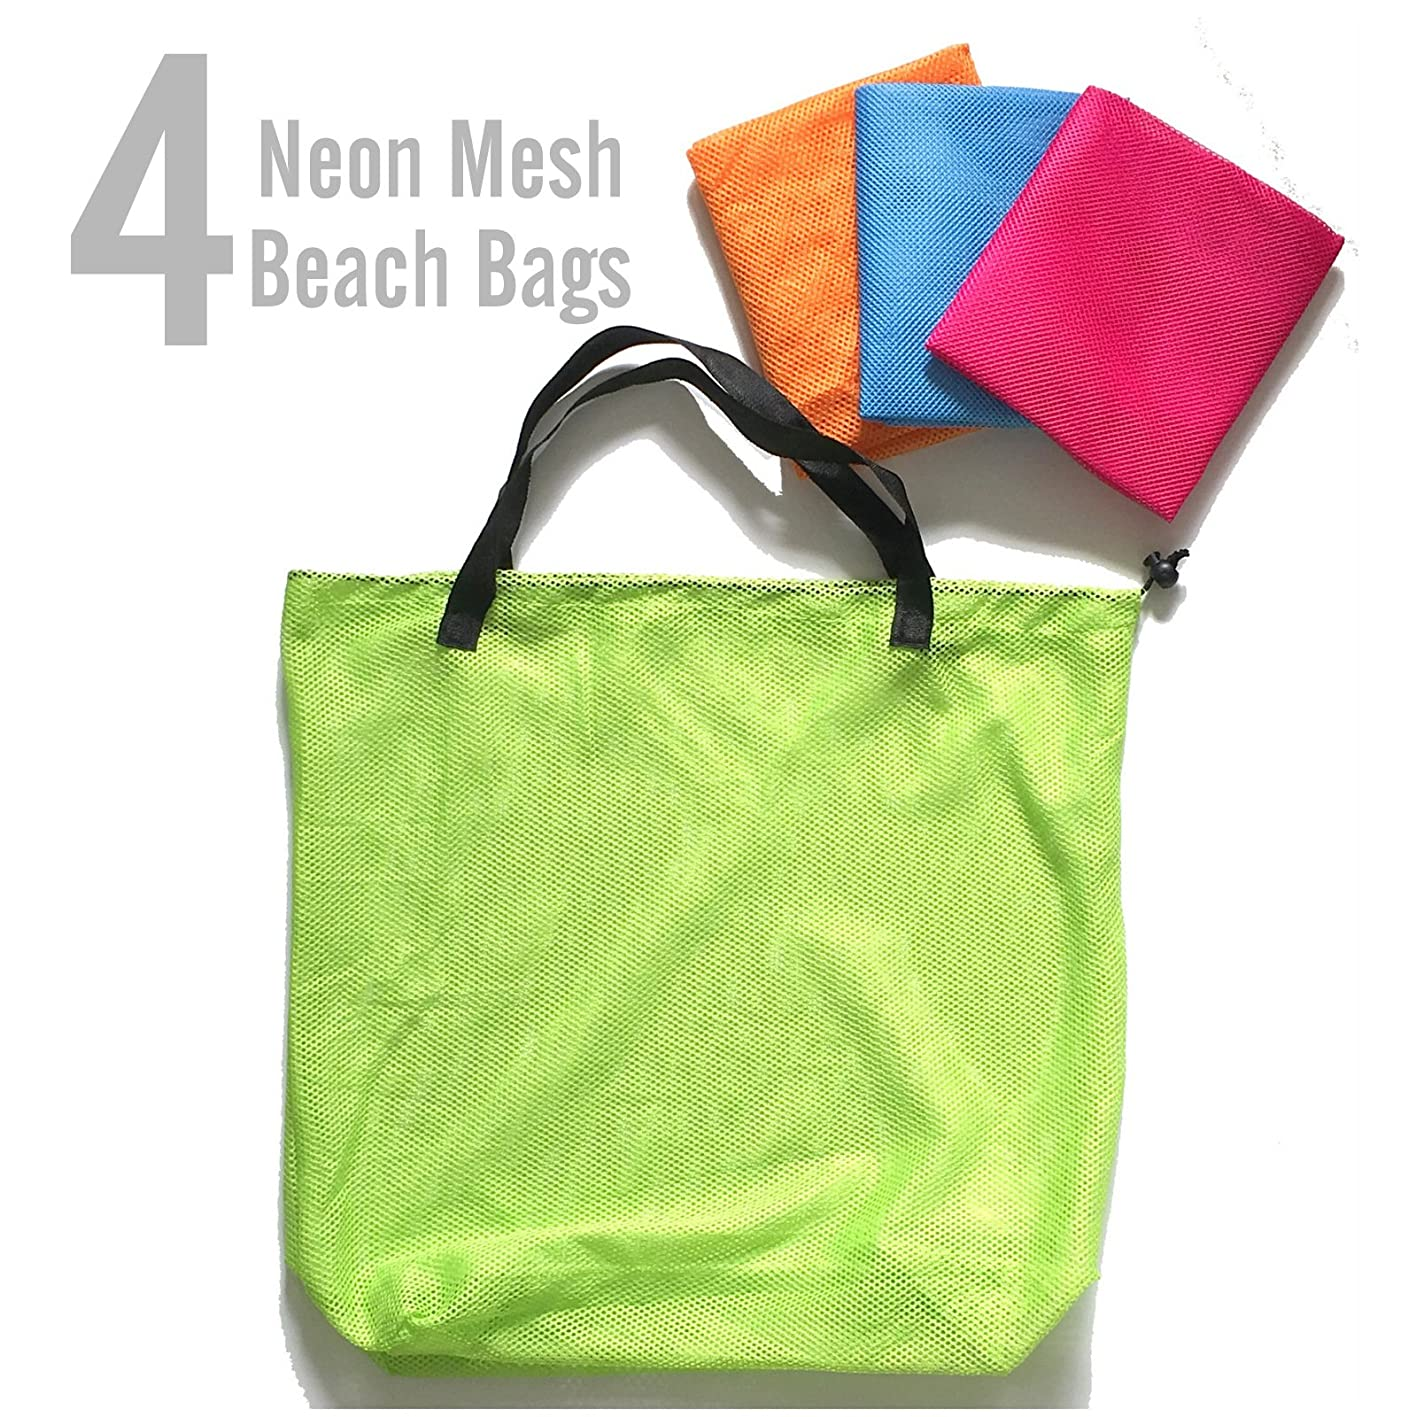 Azi 4 Neon Mesh Tote Bags For Beach Shopping Travel Pool - Fits Most Beach Must Haves, Kids Sand Toys - Pink, Blue, Orange & Green kjtonwwgnsp962